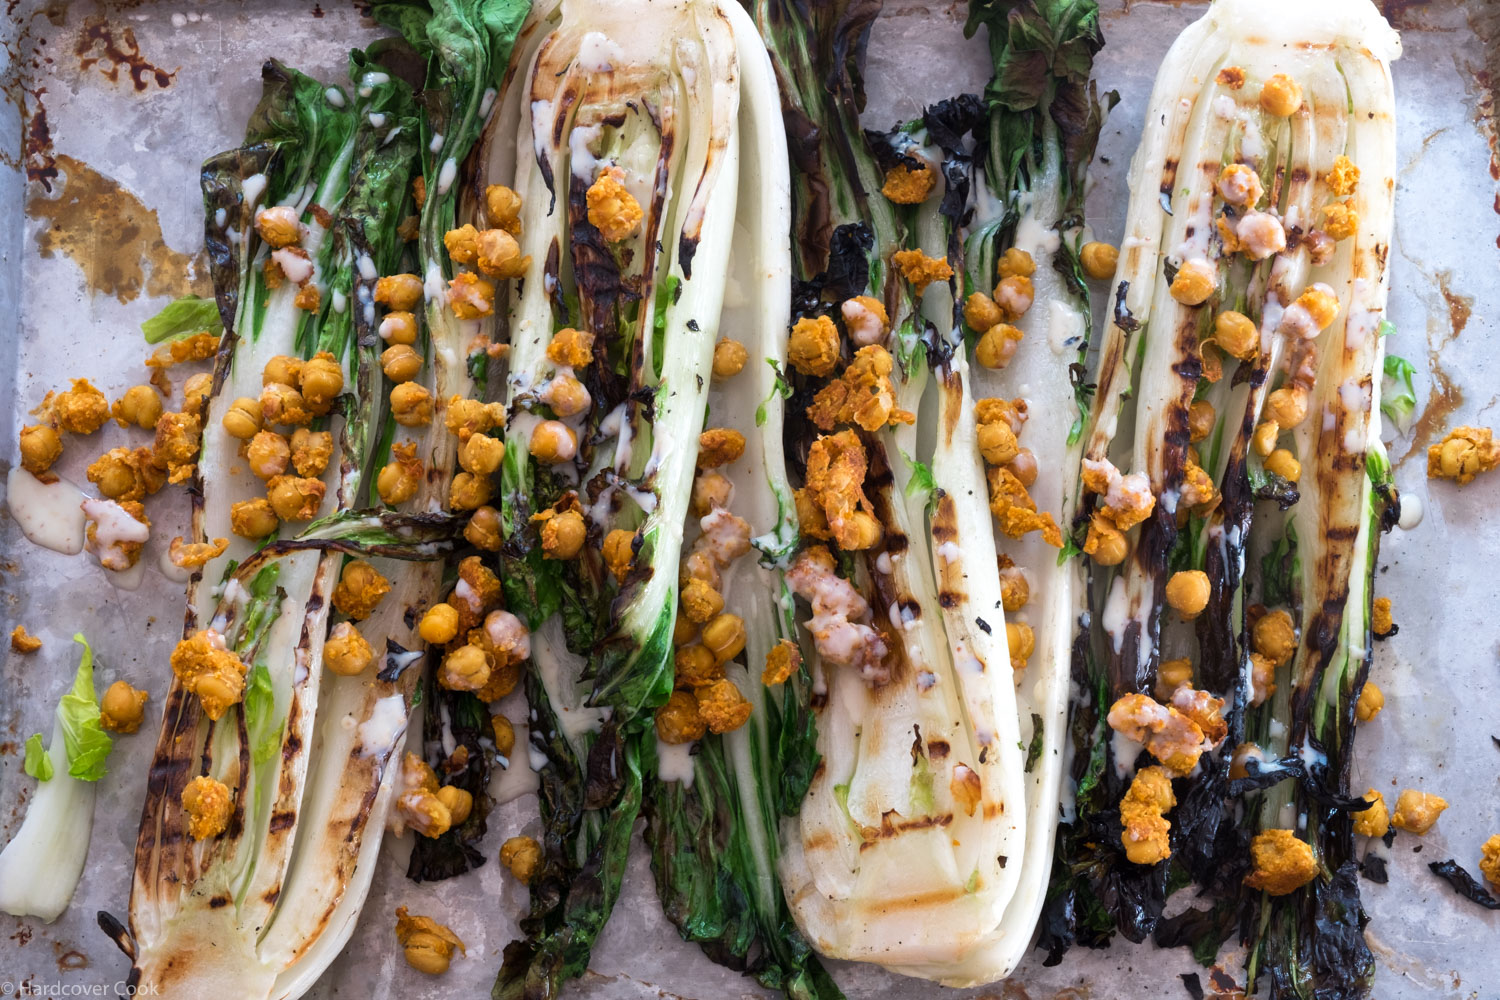 Grilled Bok Choy and Sriracha Chickpeas with Buttermilk Dressing